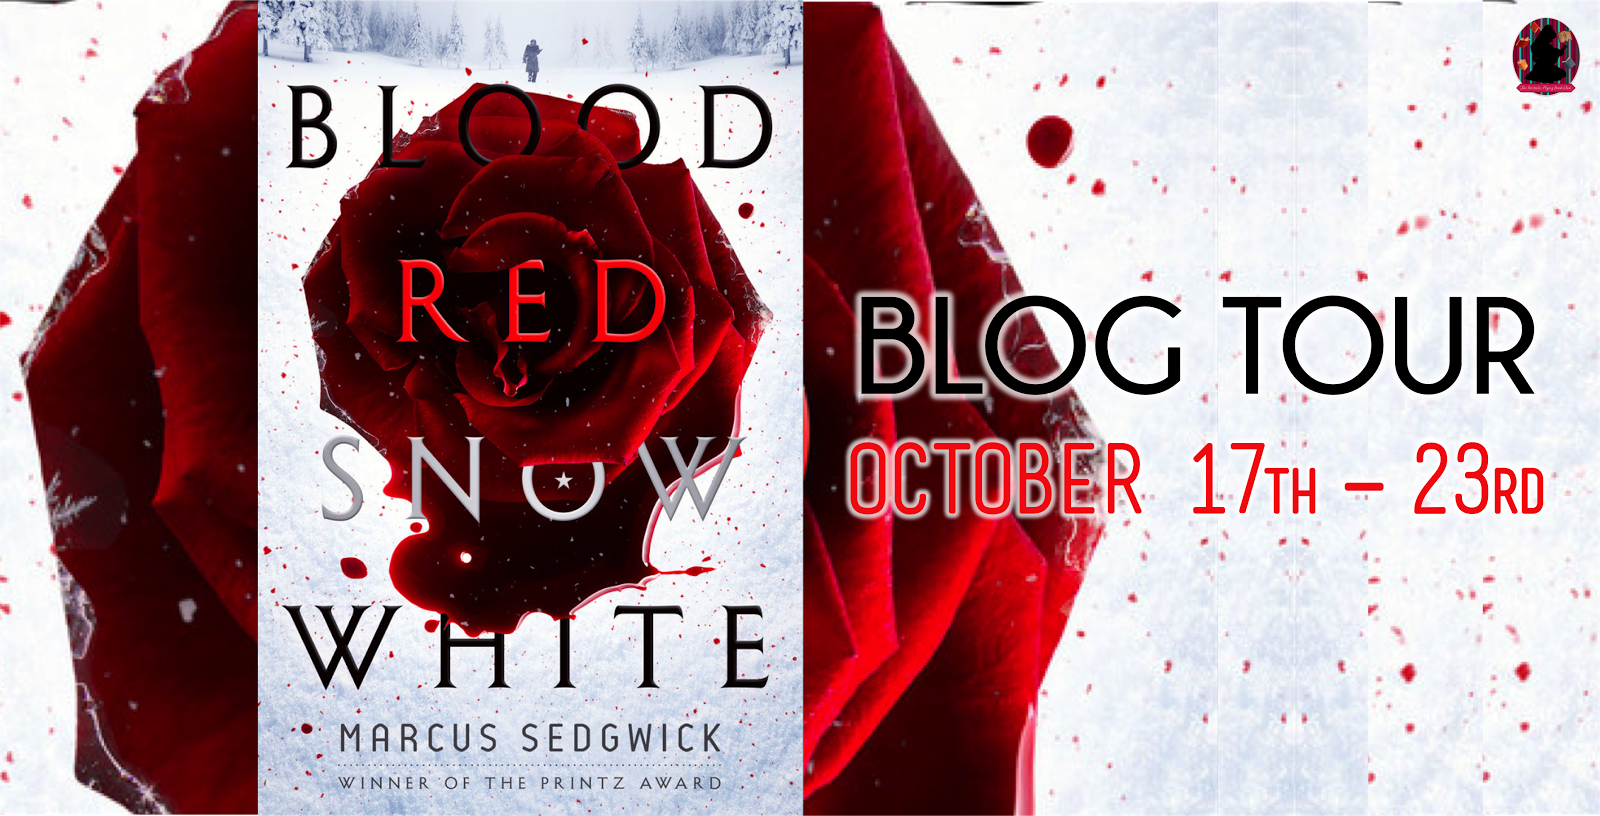 BLOG TOUR - 23rd October